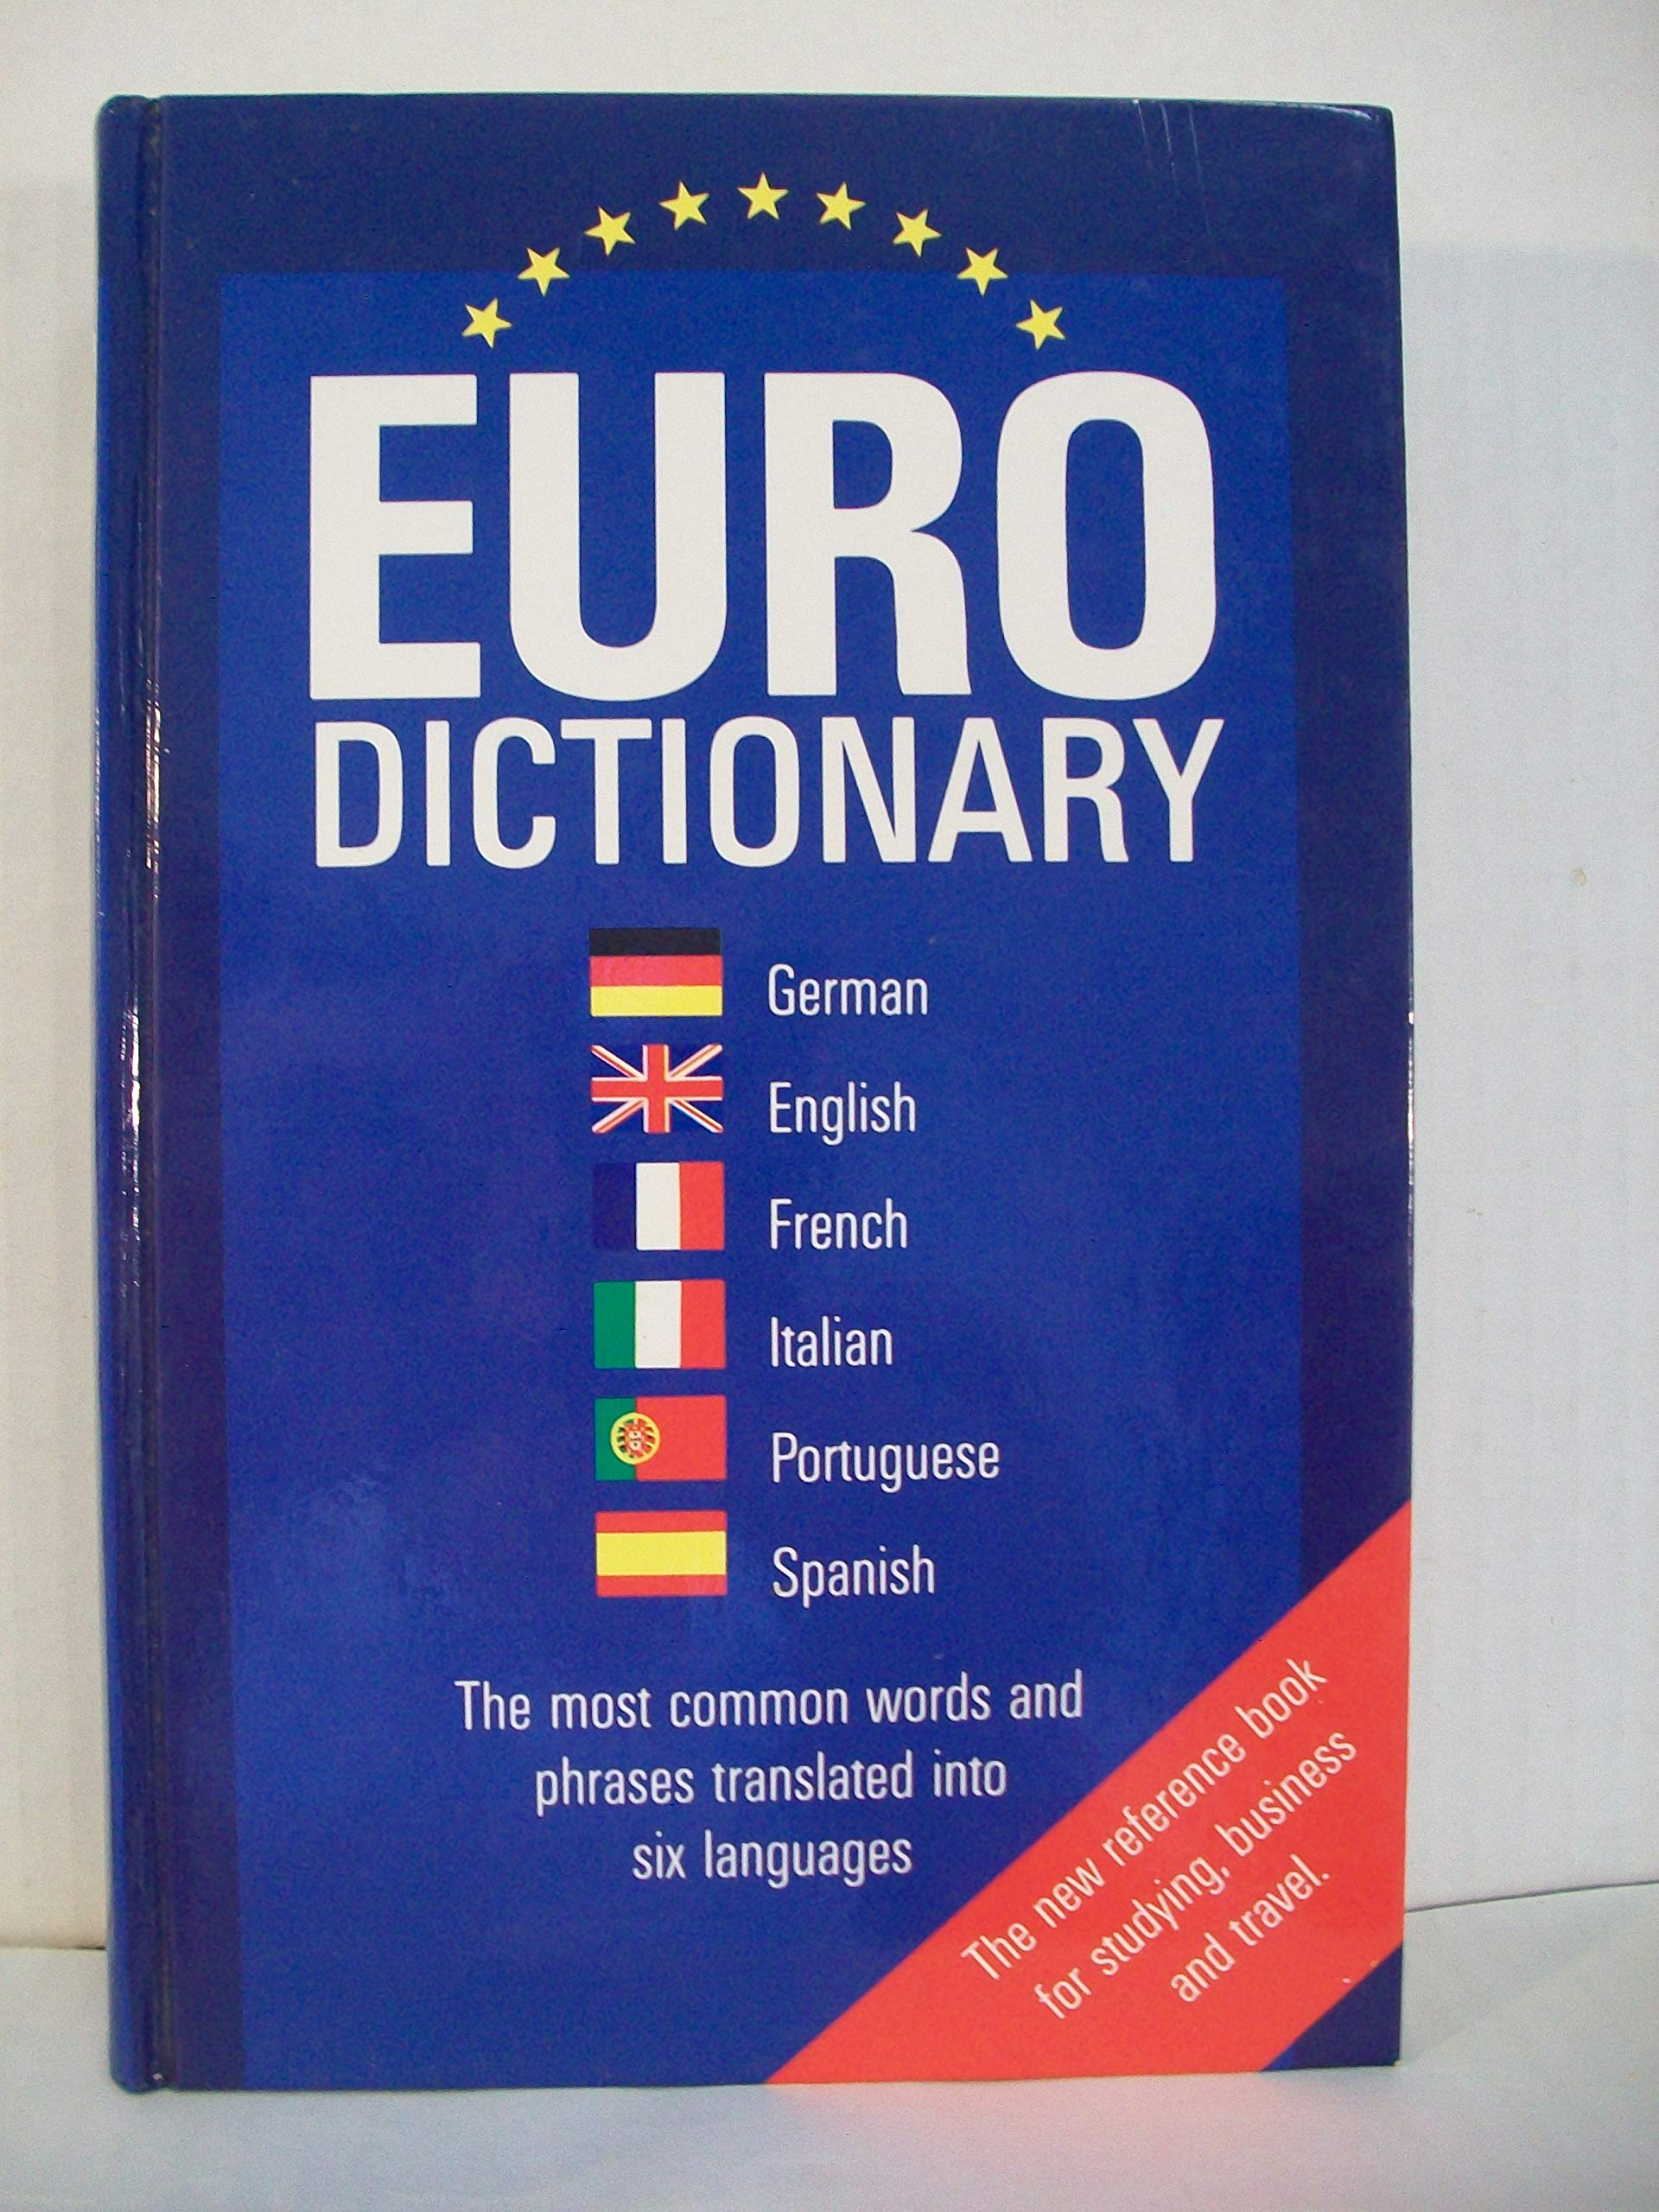 European Dictionary French English German Spanish Italian Portuguese Goursau Henri Goursau Monique 9783576800007 Books